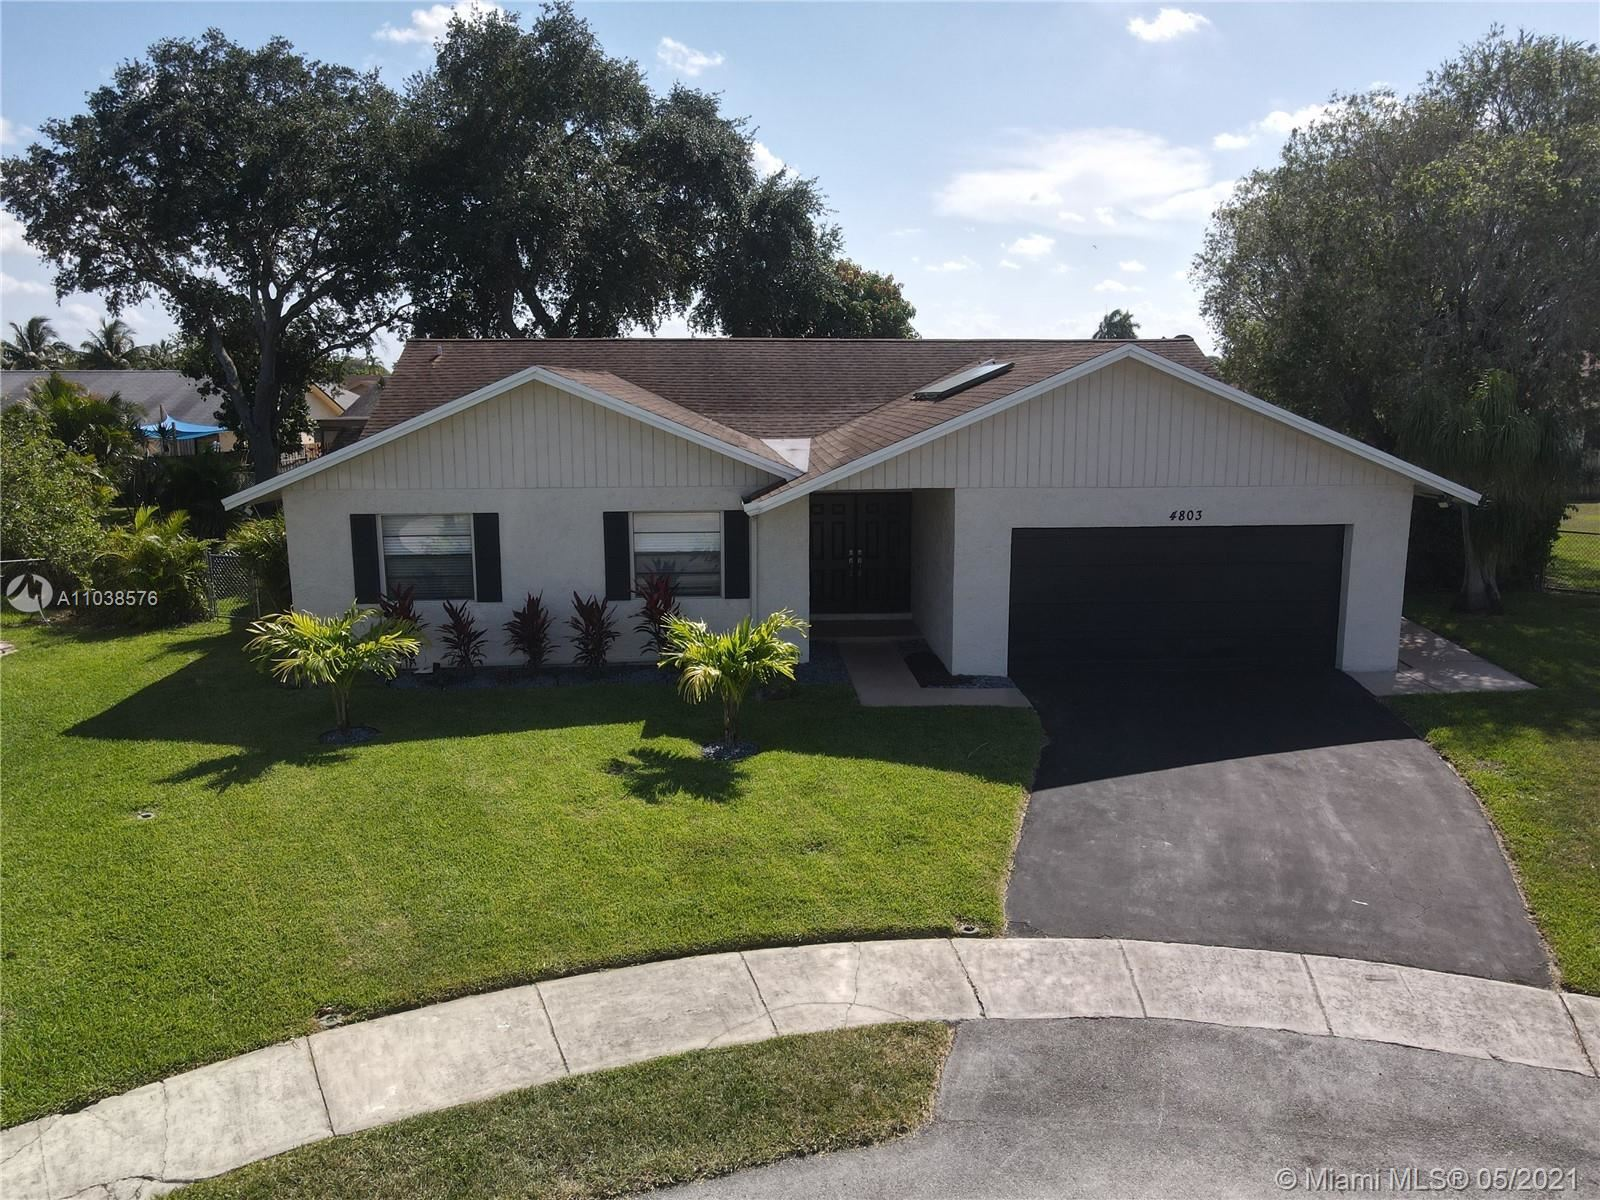 Photo of 4803 NW 92nd Ave, Sunrise, FL 33351 (MLS # A11038576)